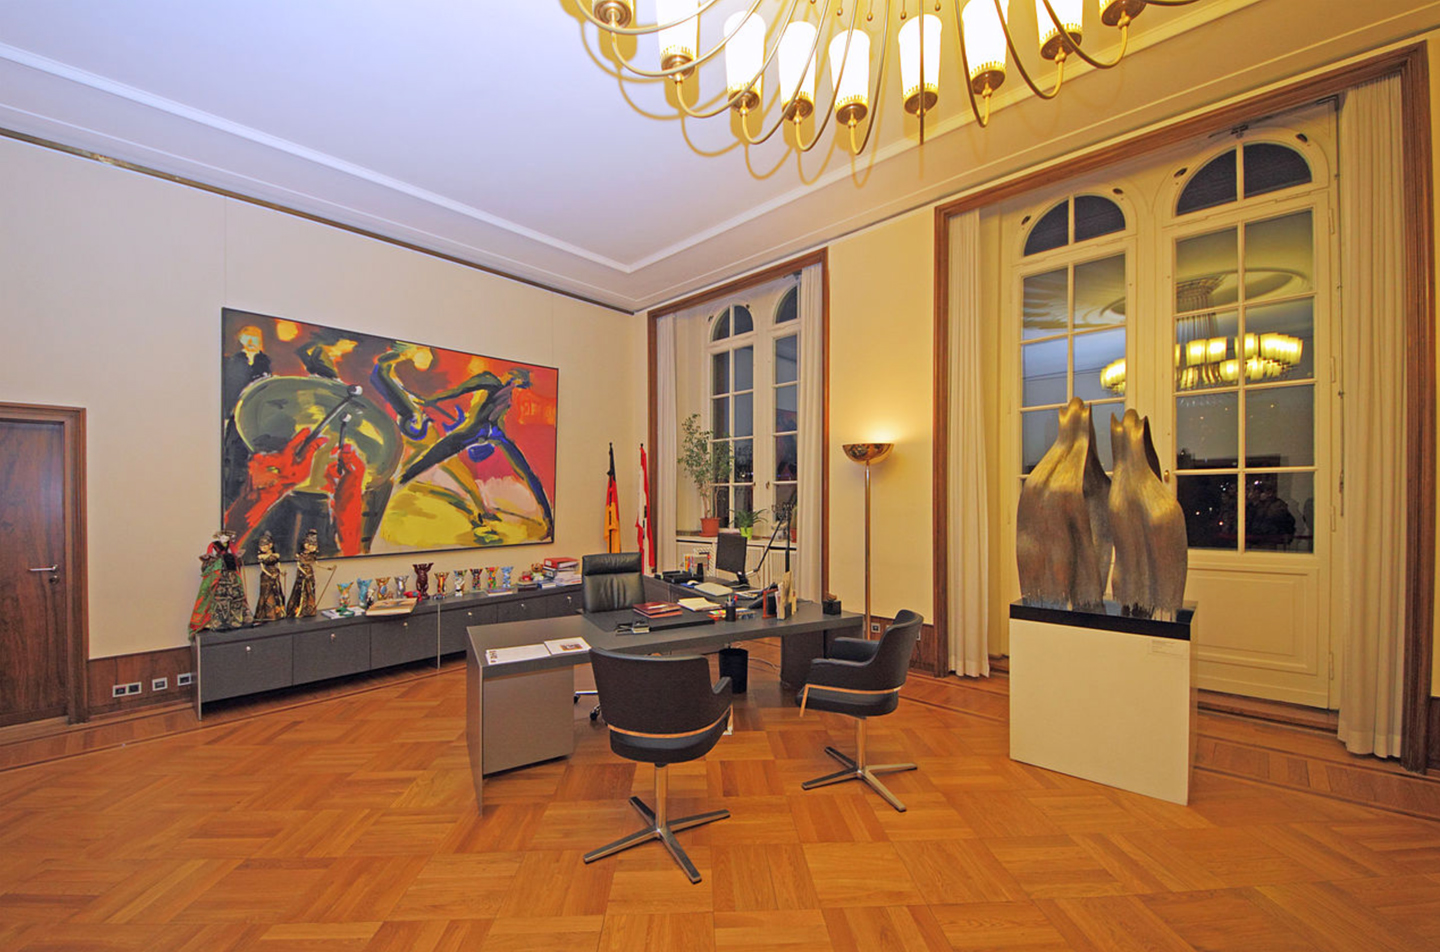 The new style: mayor's office in the  Rotes Rathaus